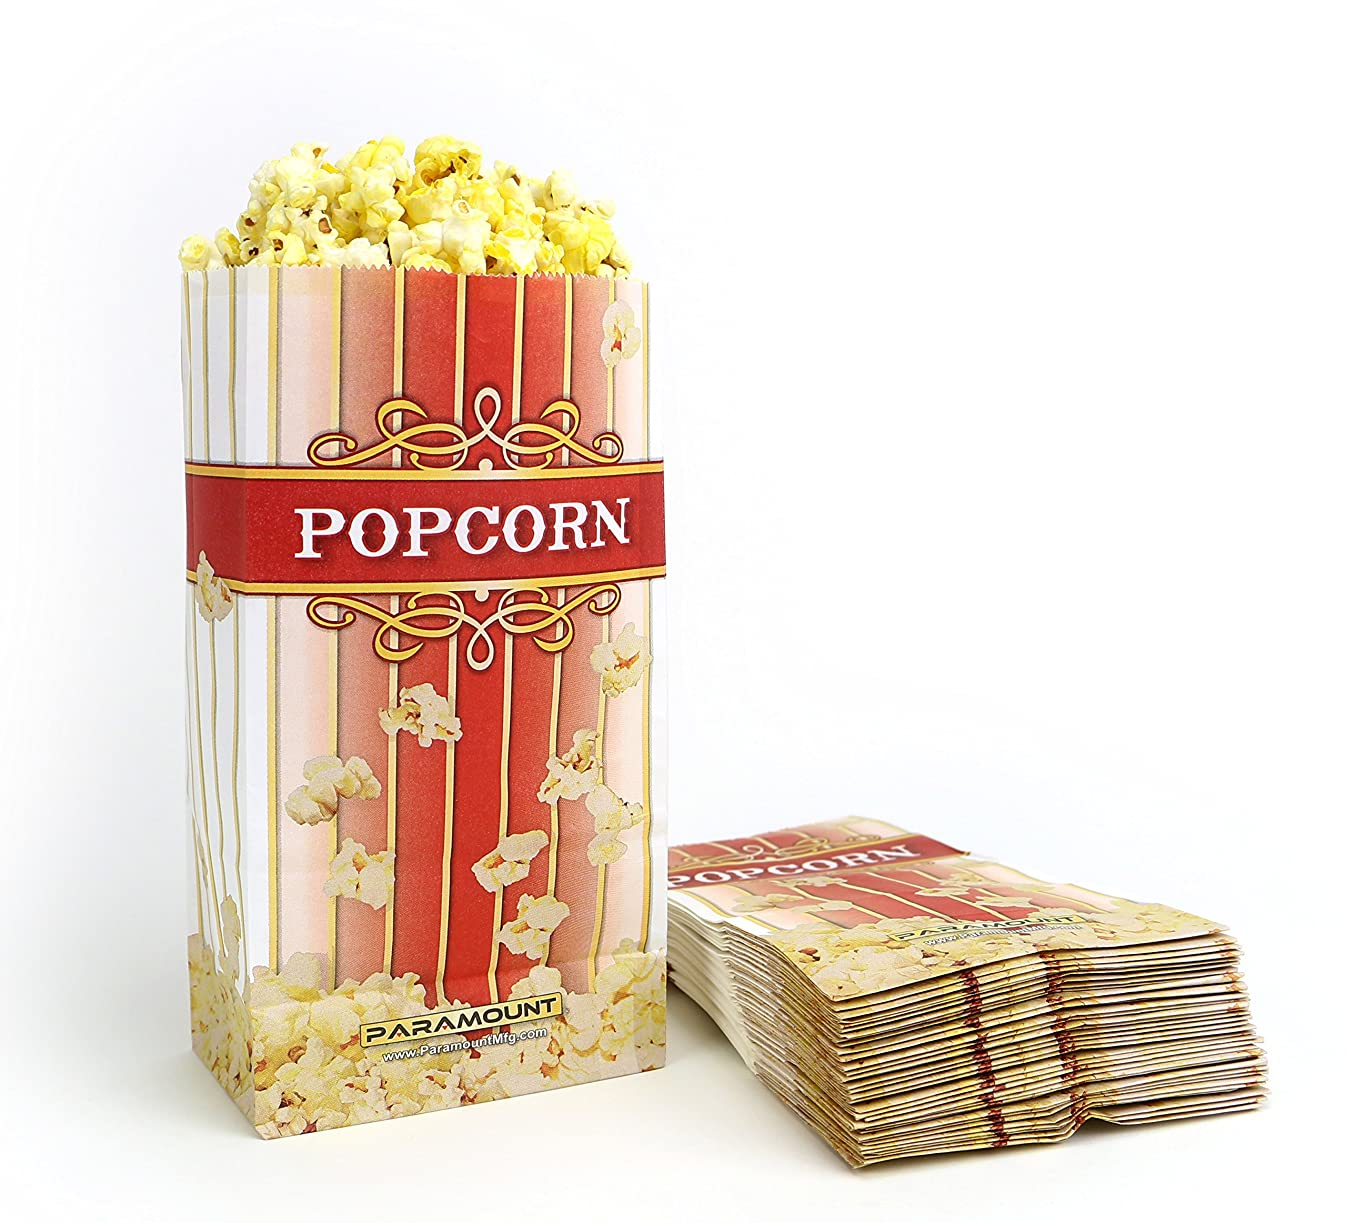 100 Popcorn Serving Bags - 'Large' Standalone Flat Bottom Paper Bag Style